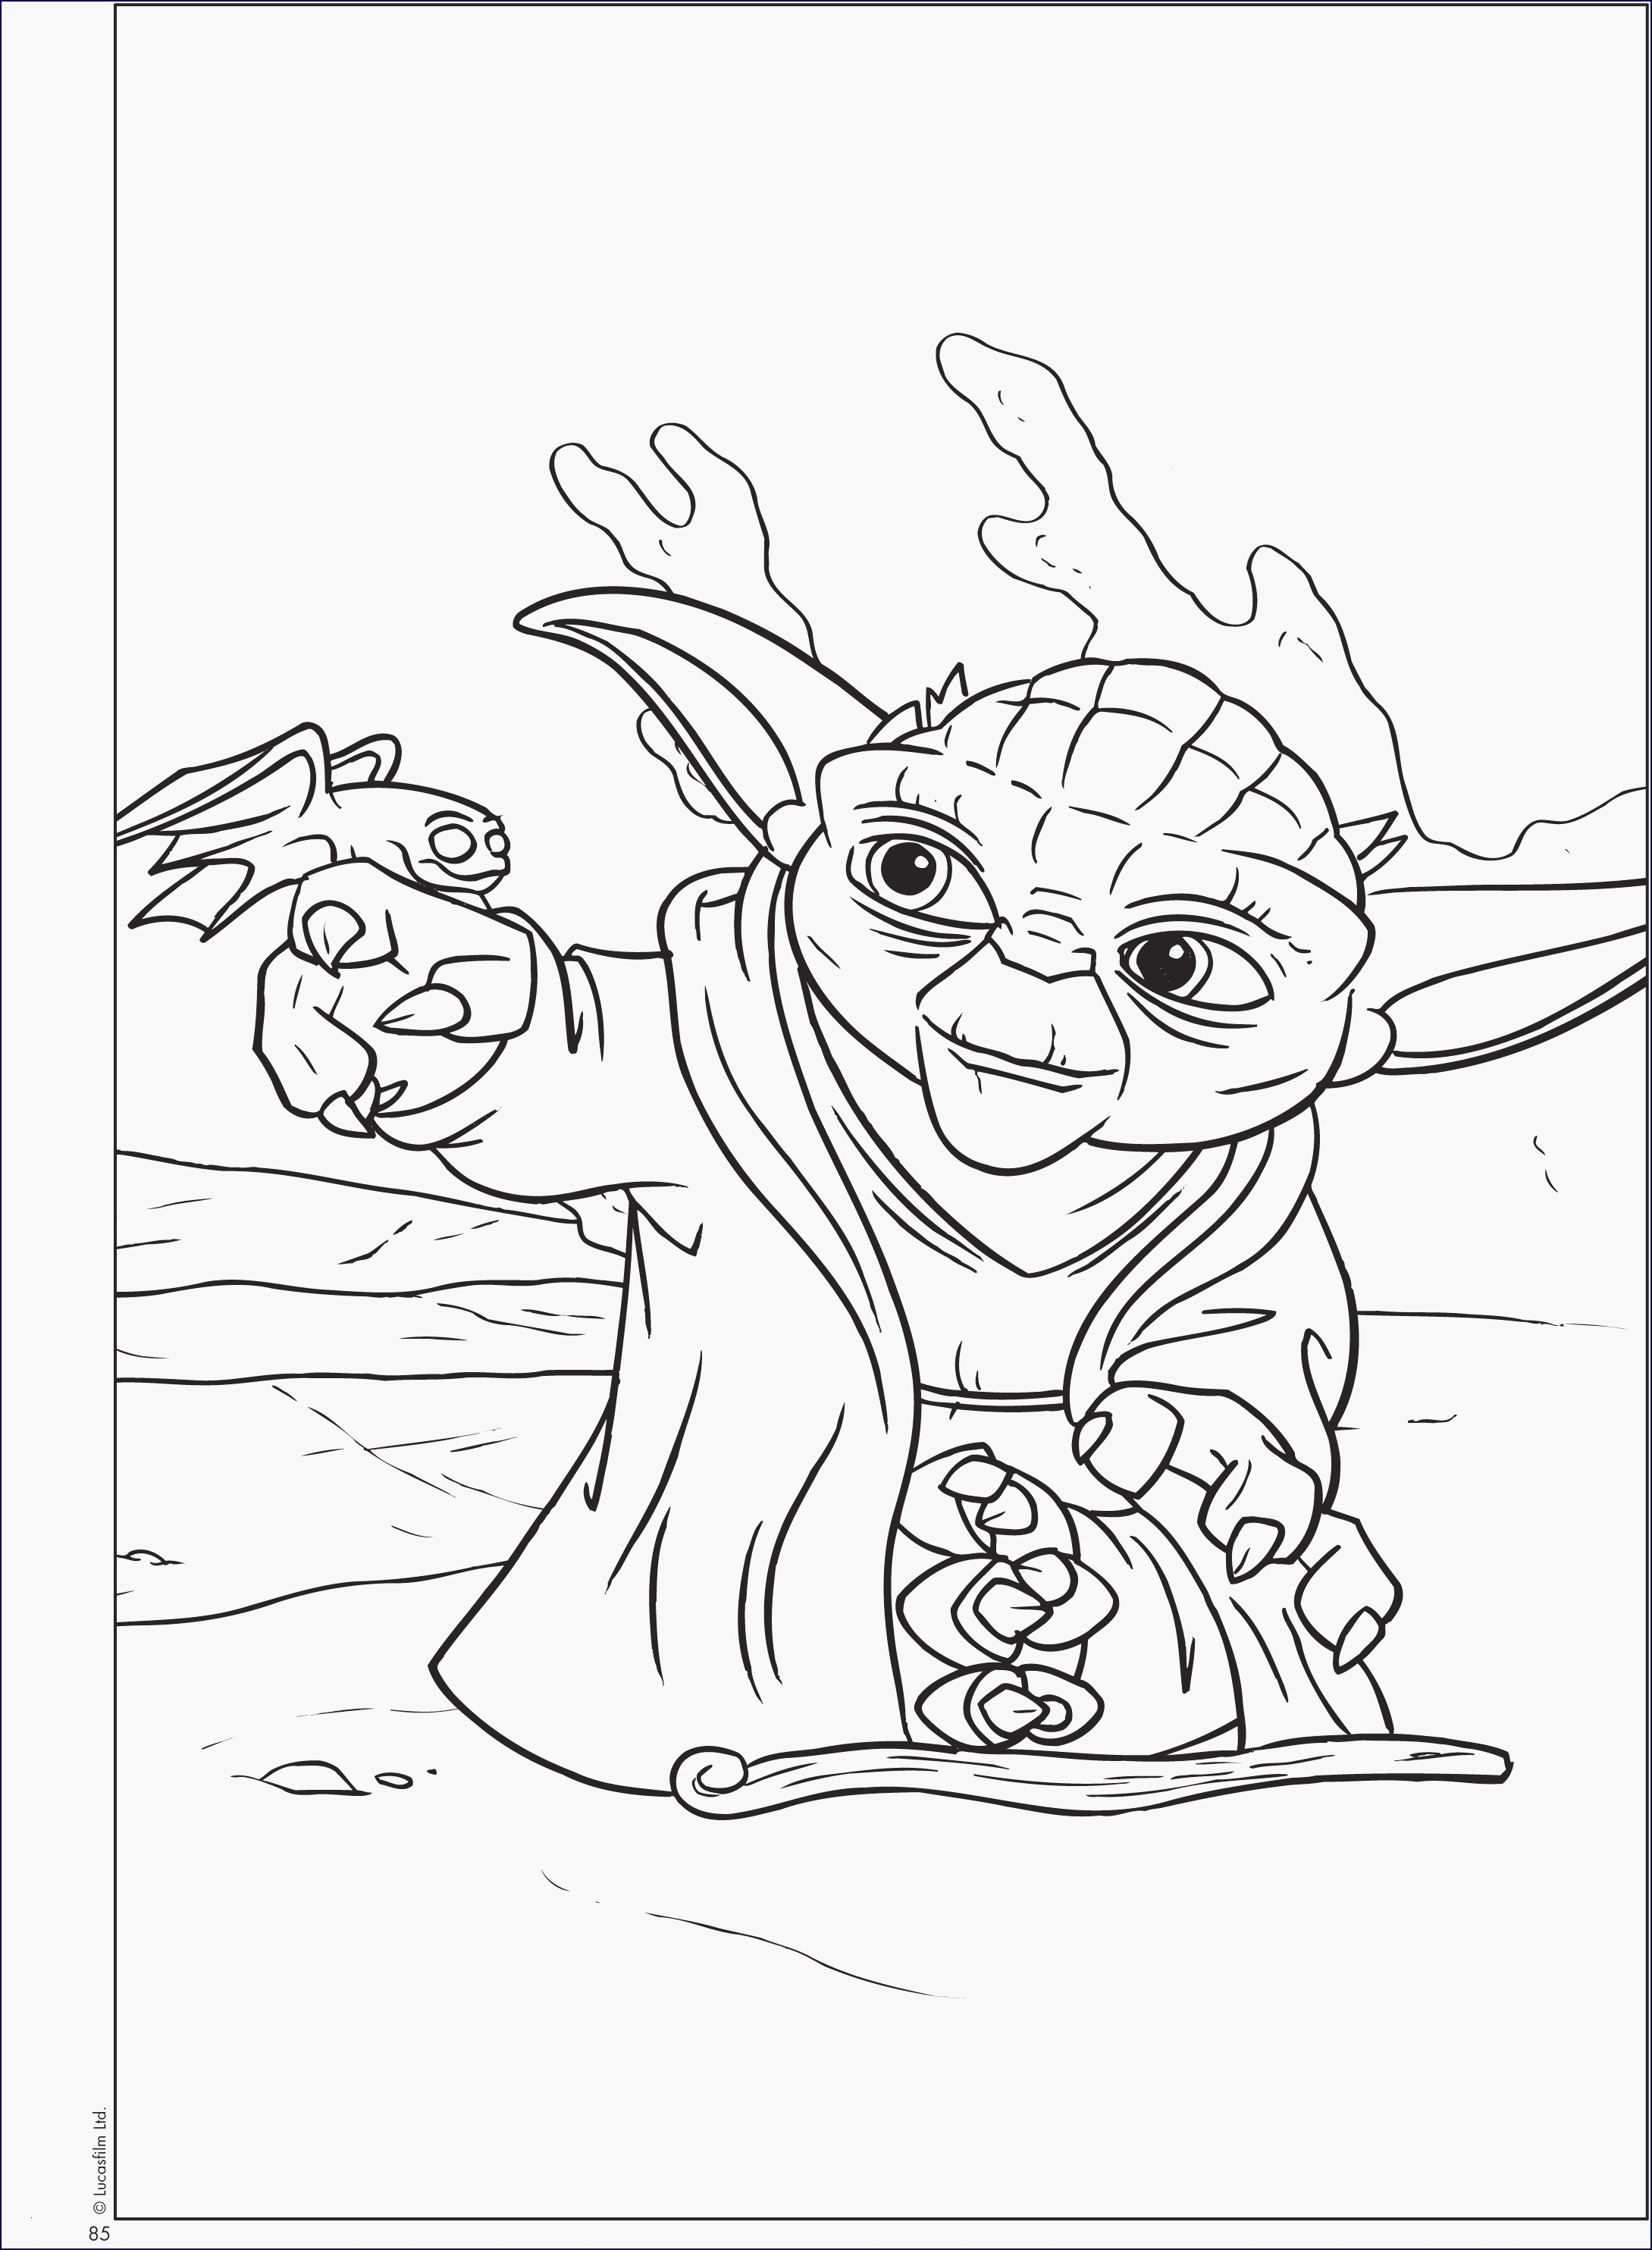 photograph relating to Printable Star Wars Characters titled 24 Star Wars Figures Coloring Web pages Range - Coloring